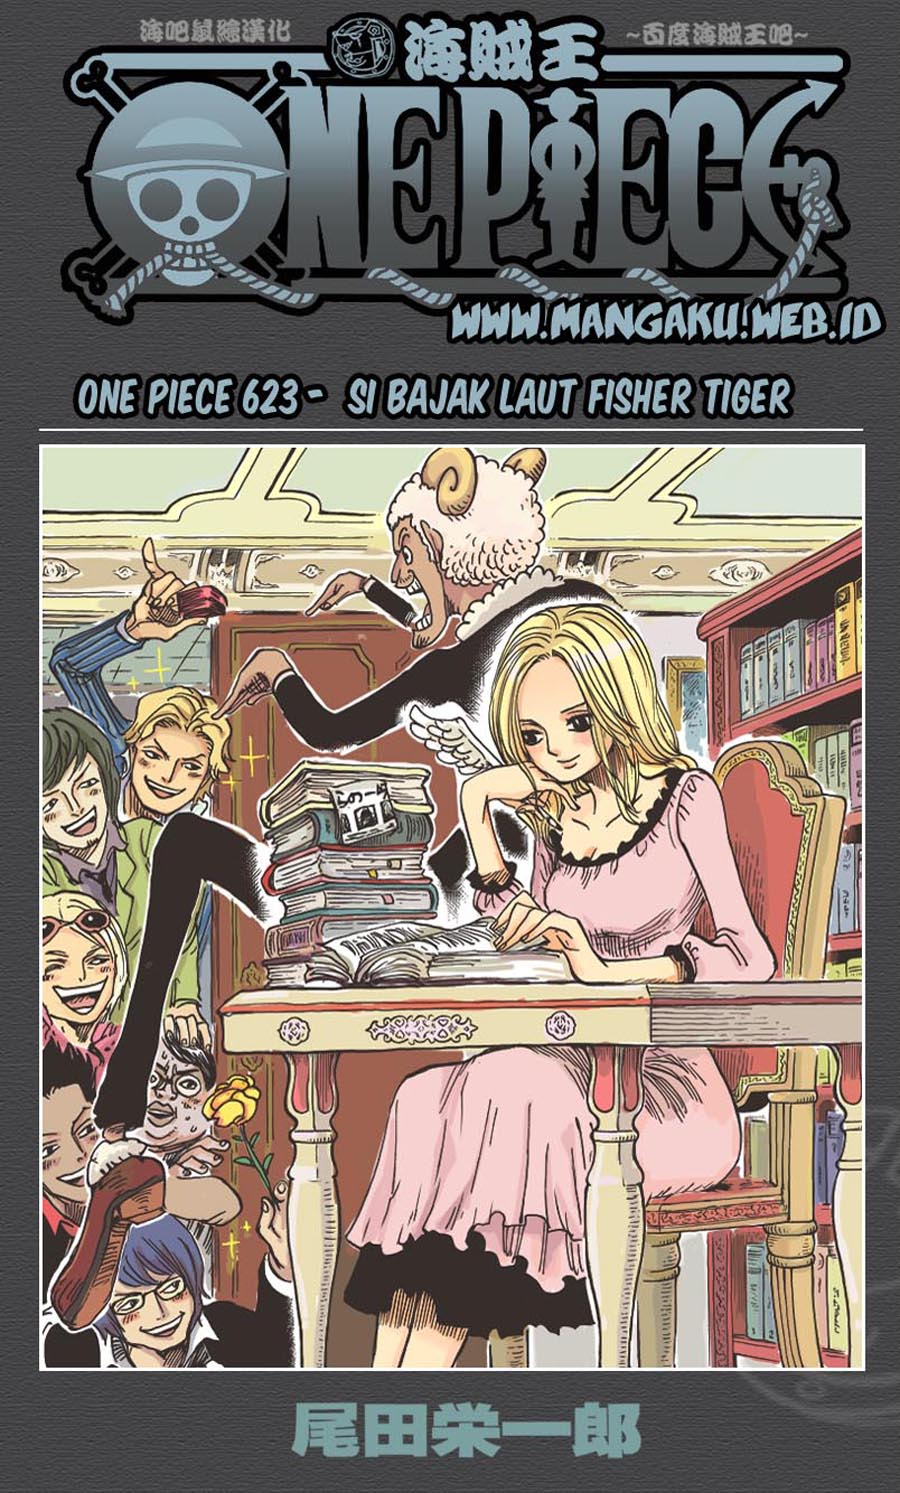 Baca Manga, Baca Komik, One Piece Chapter 623, One Piece 623 Bahasa Indonesia, One Piece 623 Online